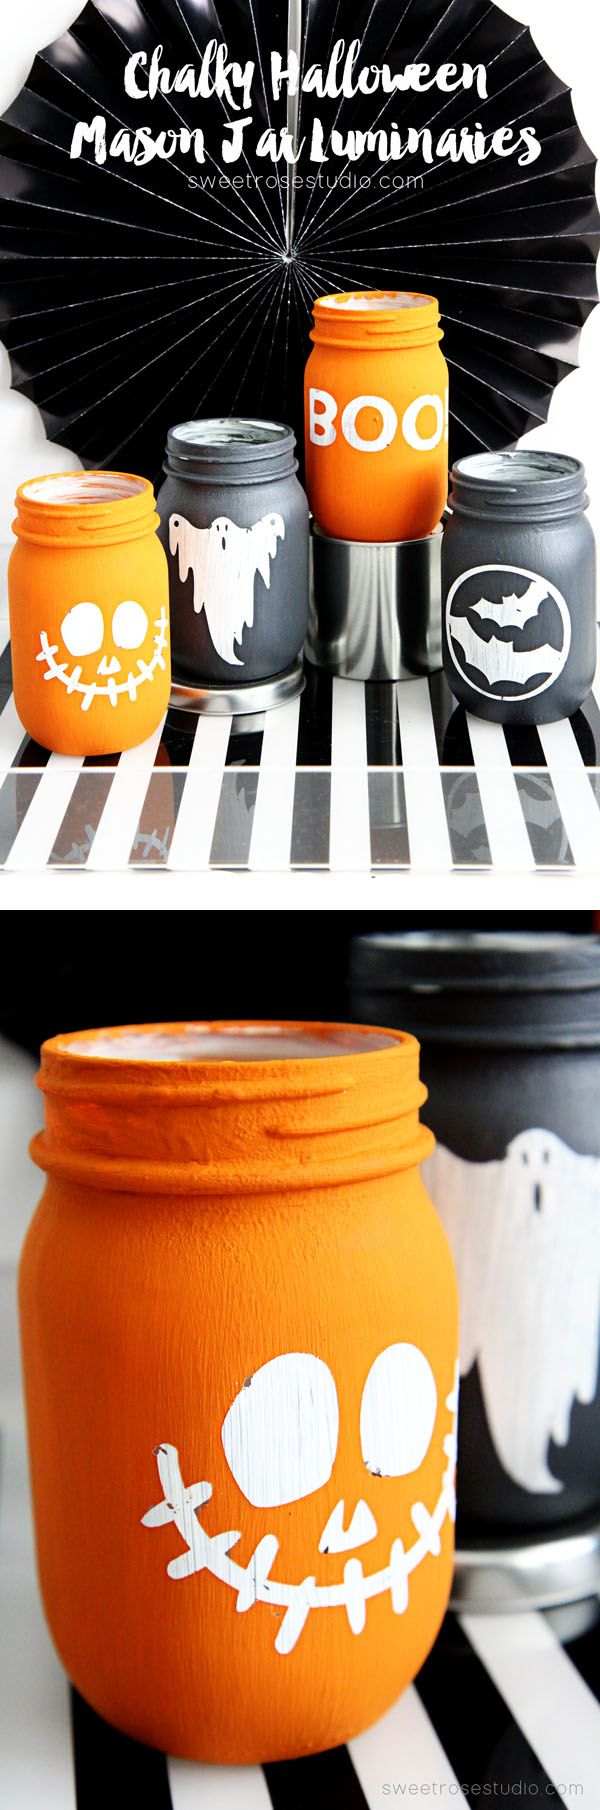 Chalky Halloween Mason Jar Luminaries.